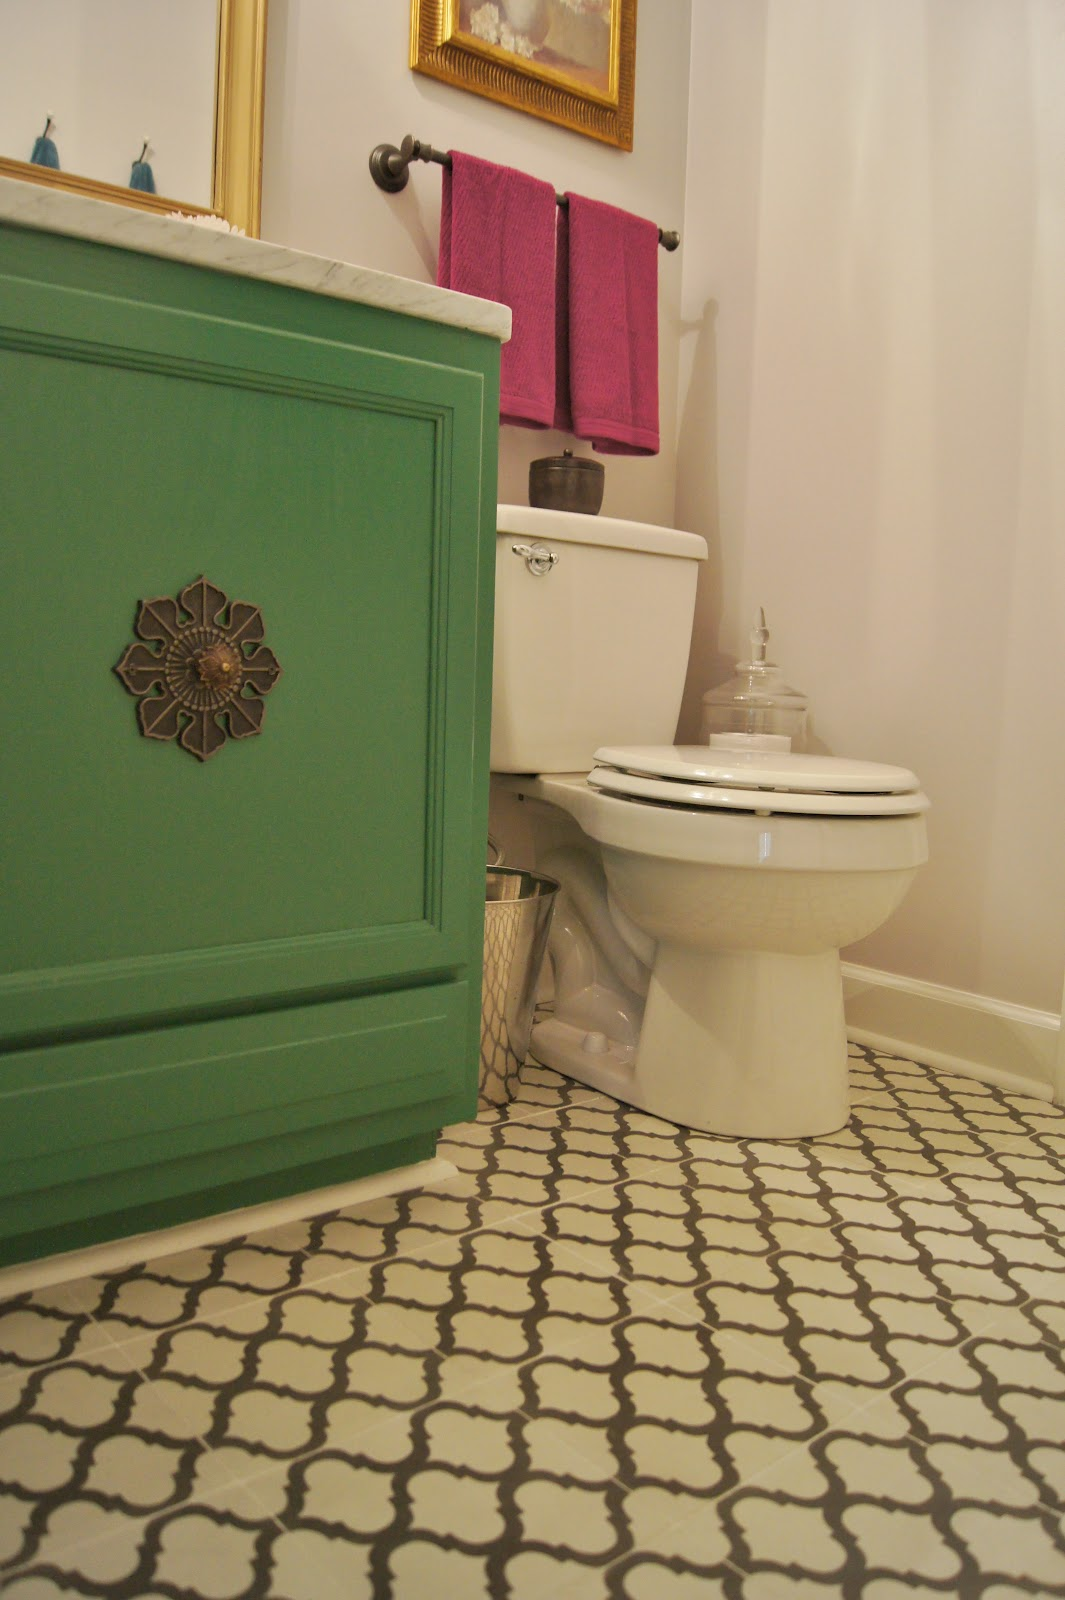 Moorish tile design bathroom floor